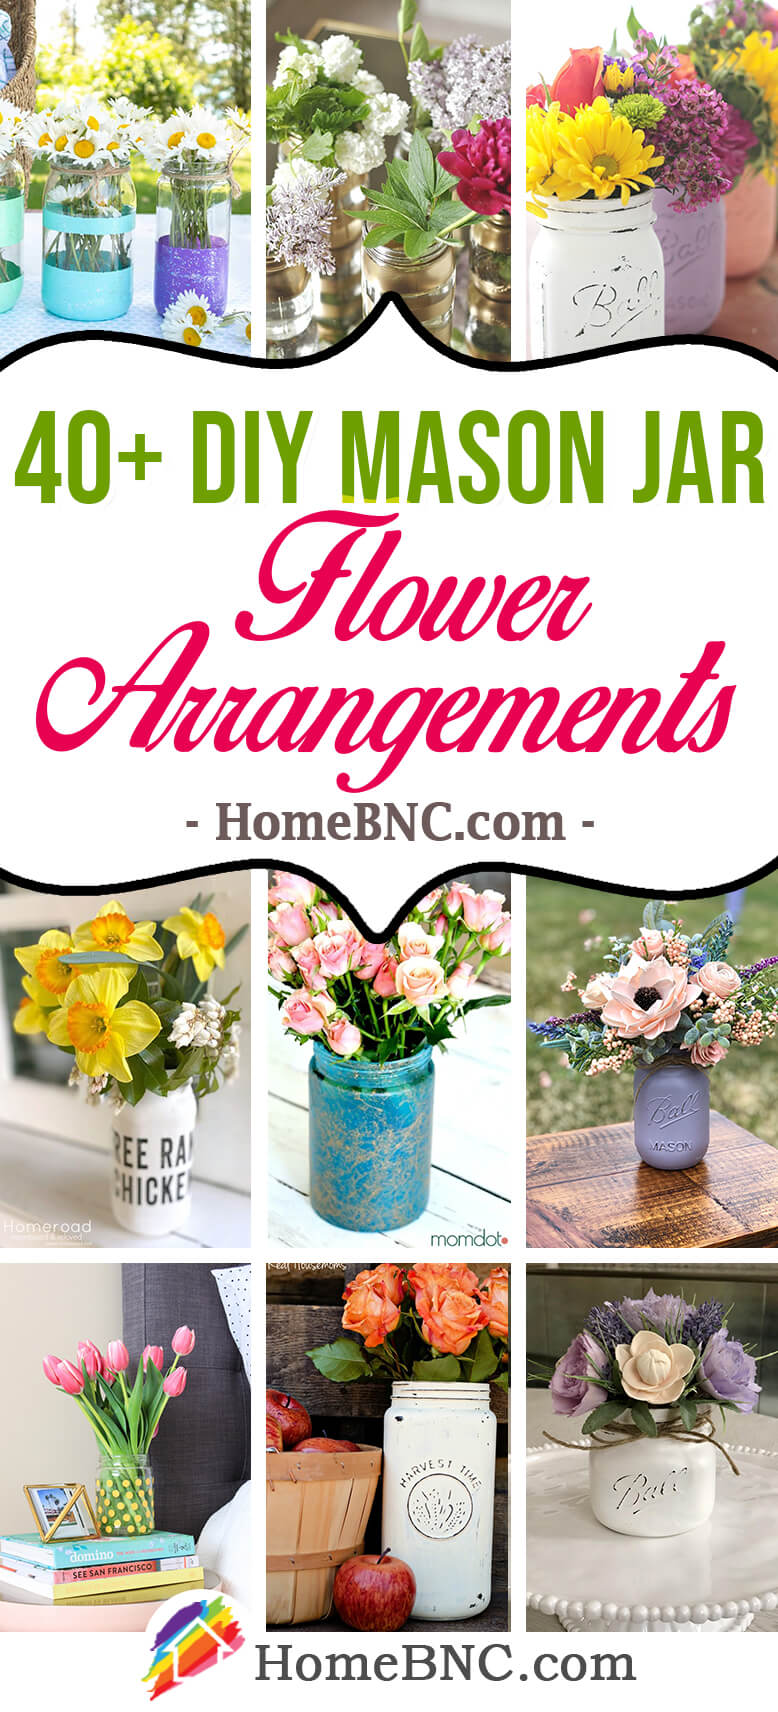 DIY Mason Jar Flower Arrangement Ideas